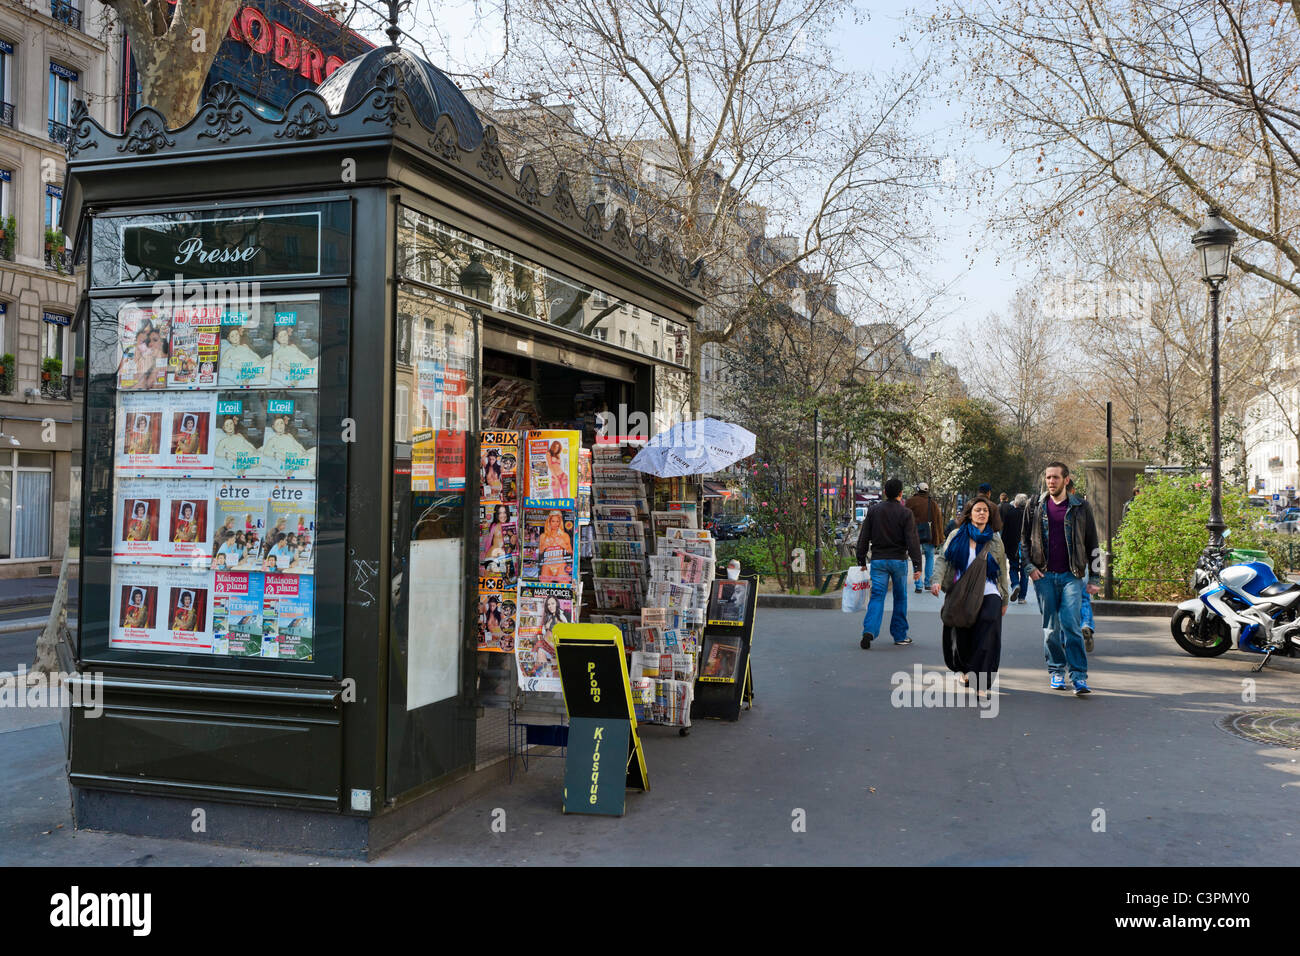 Typical newspaper kiosk on the Boulevard Rochechouart, Montmartre, Paris, France - Stock Image